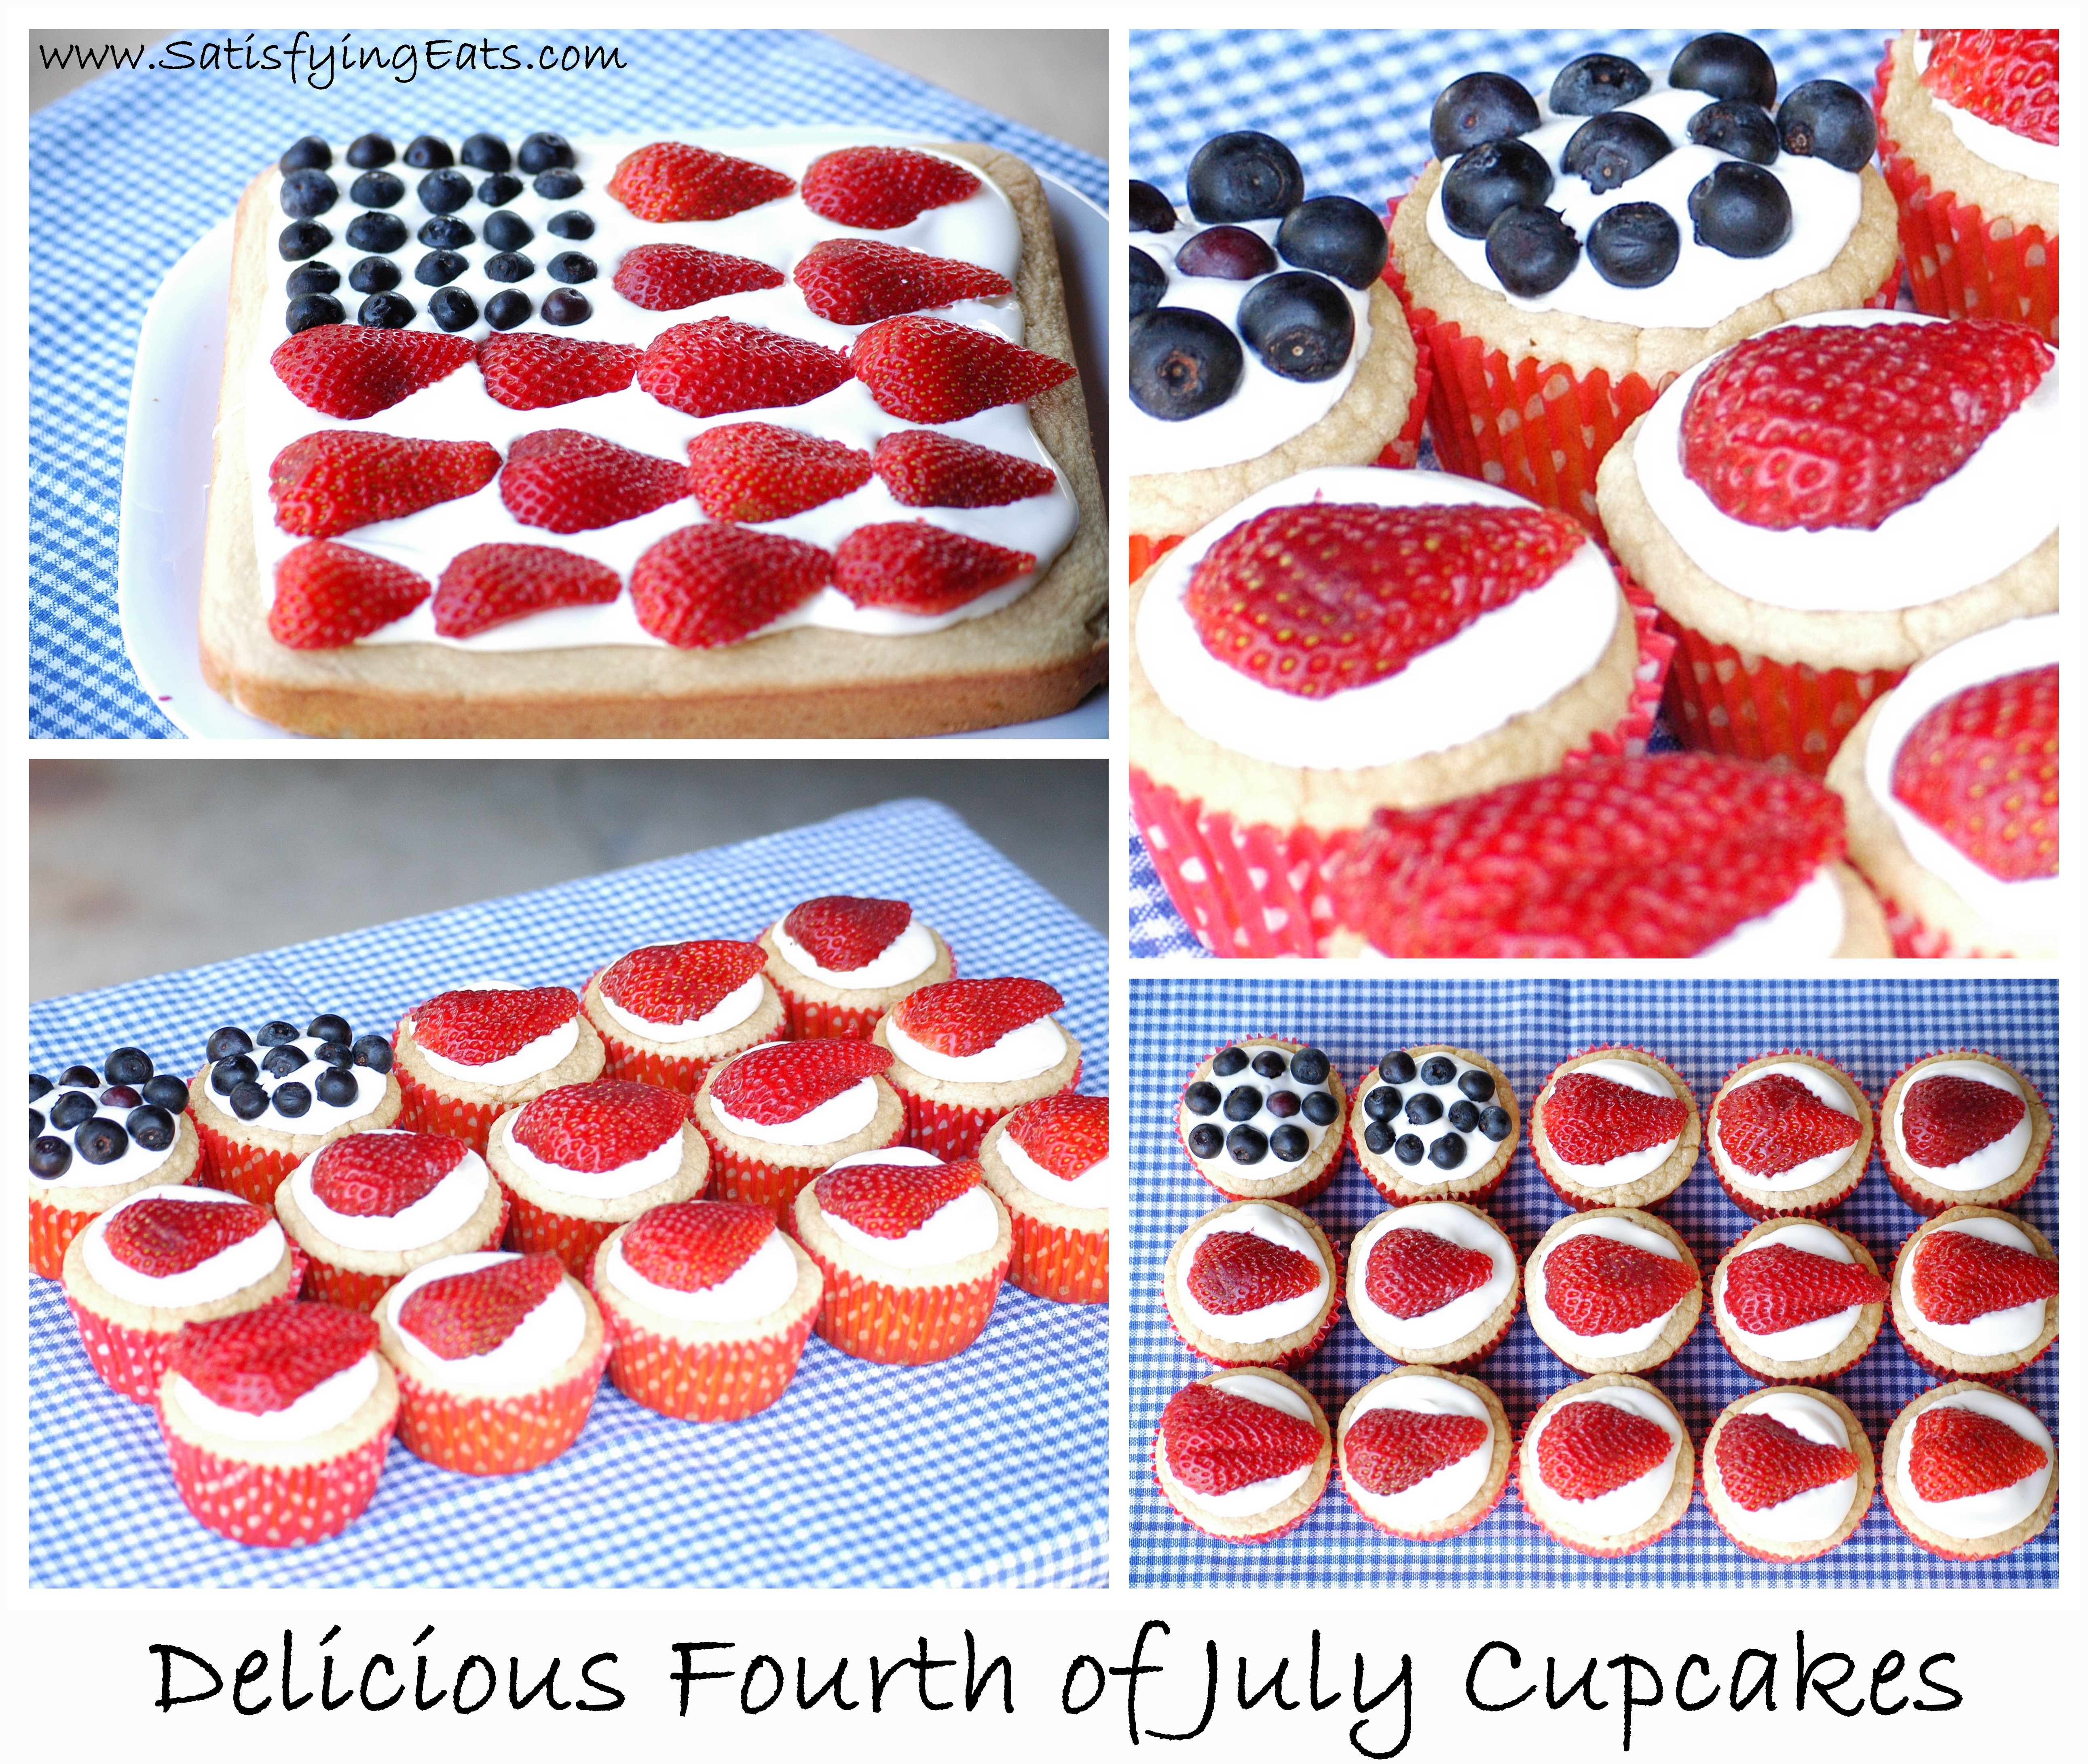 Fourth Of July Cupcakes (The BEST Cupcakes EVER